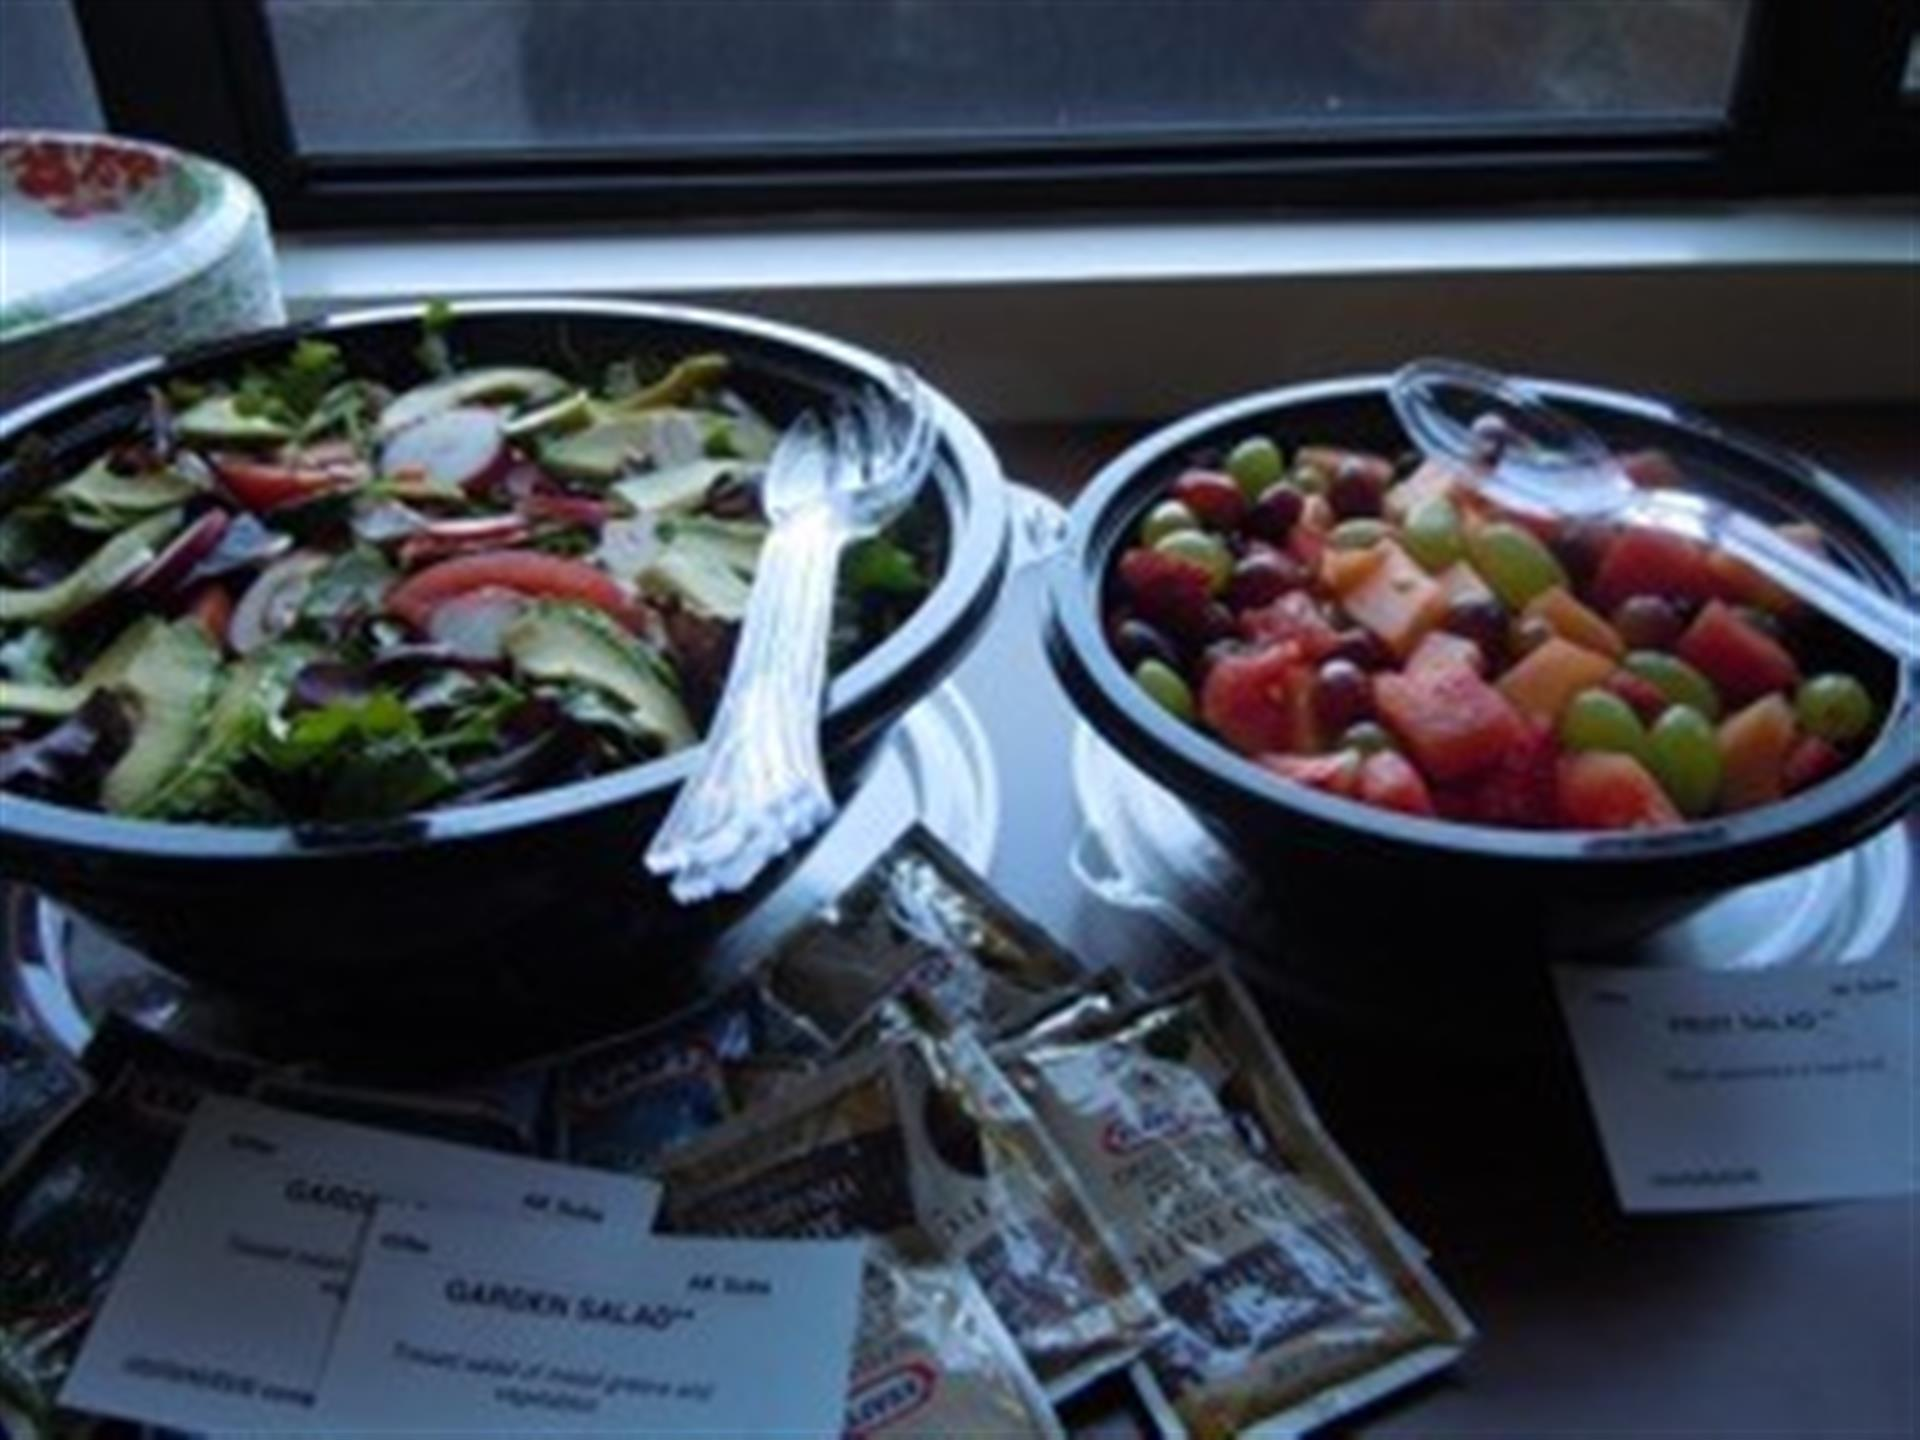 Bowls of salad, fruit salad with dressings on table.